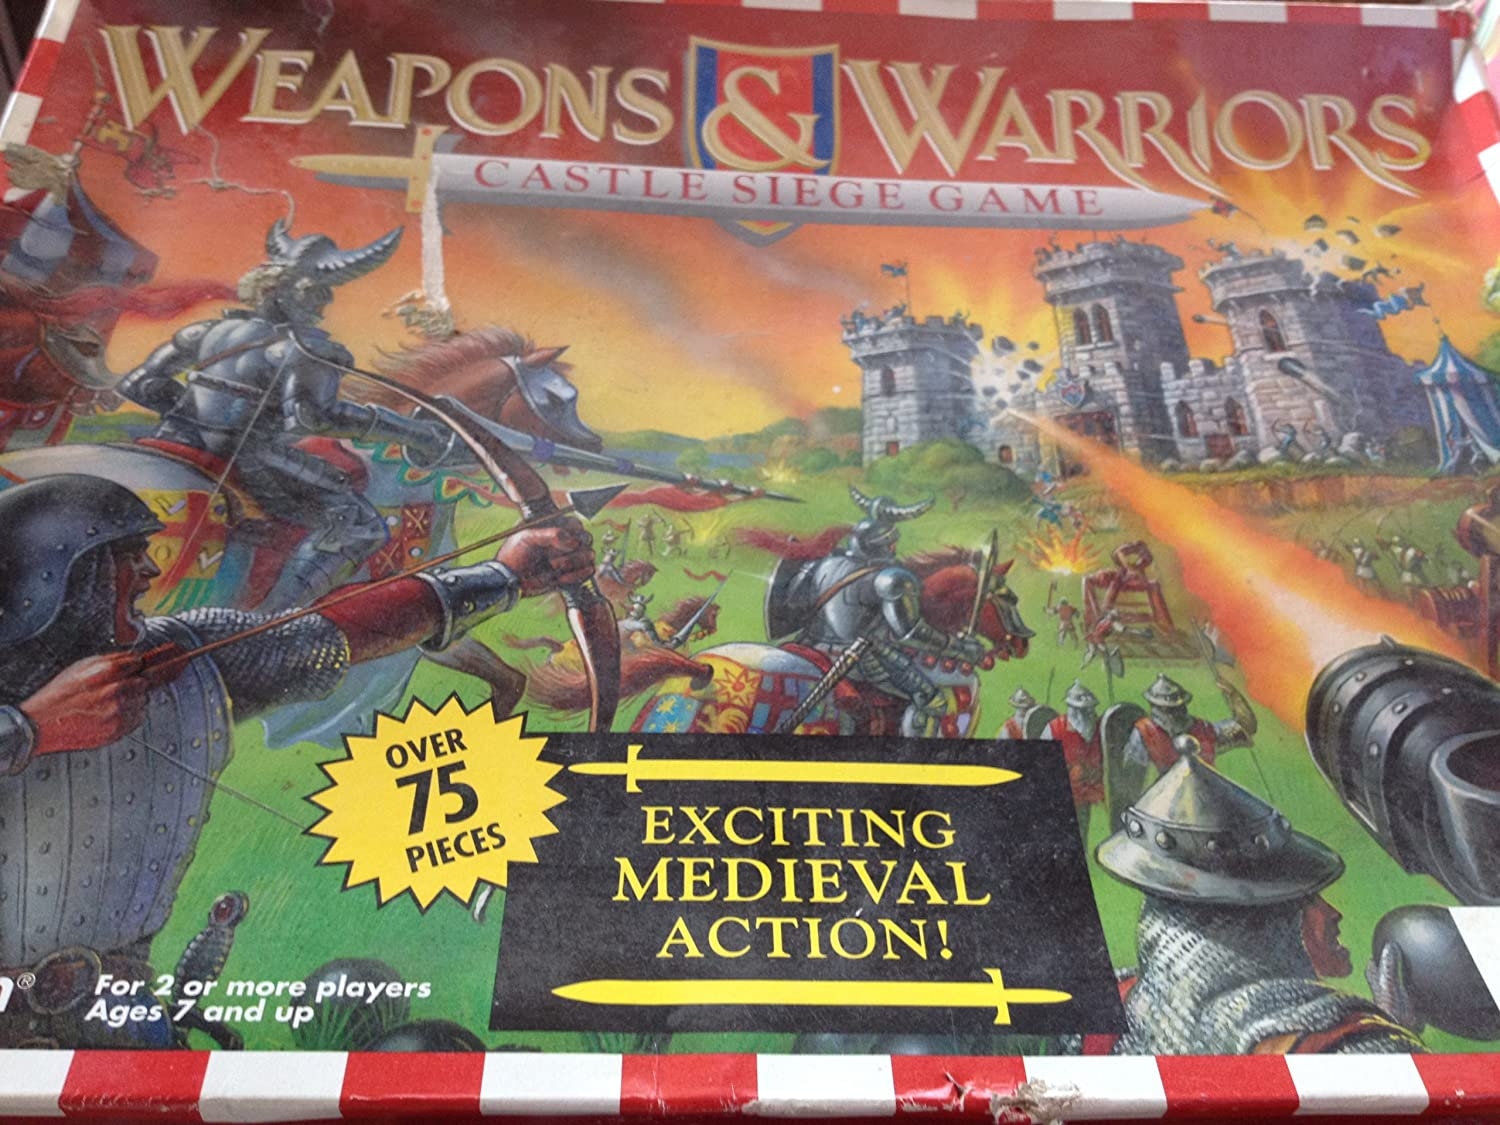 Weapons And Warriors Board Game